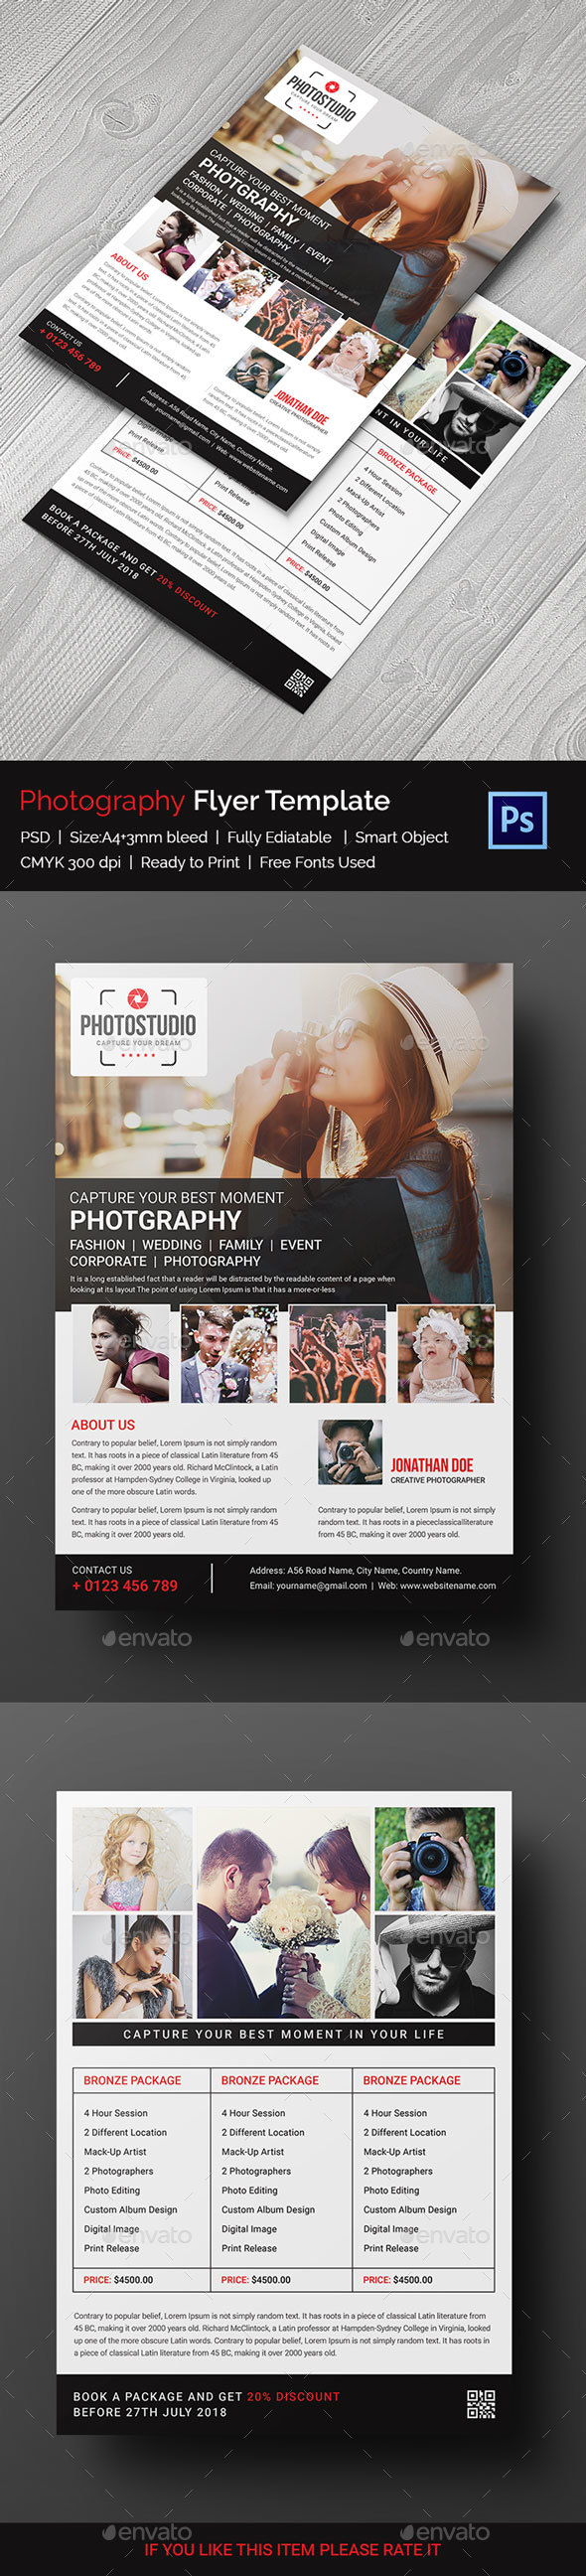 Photography Flyer - Print Templates